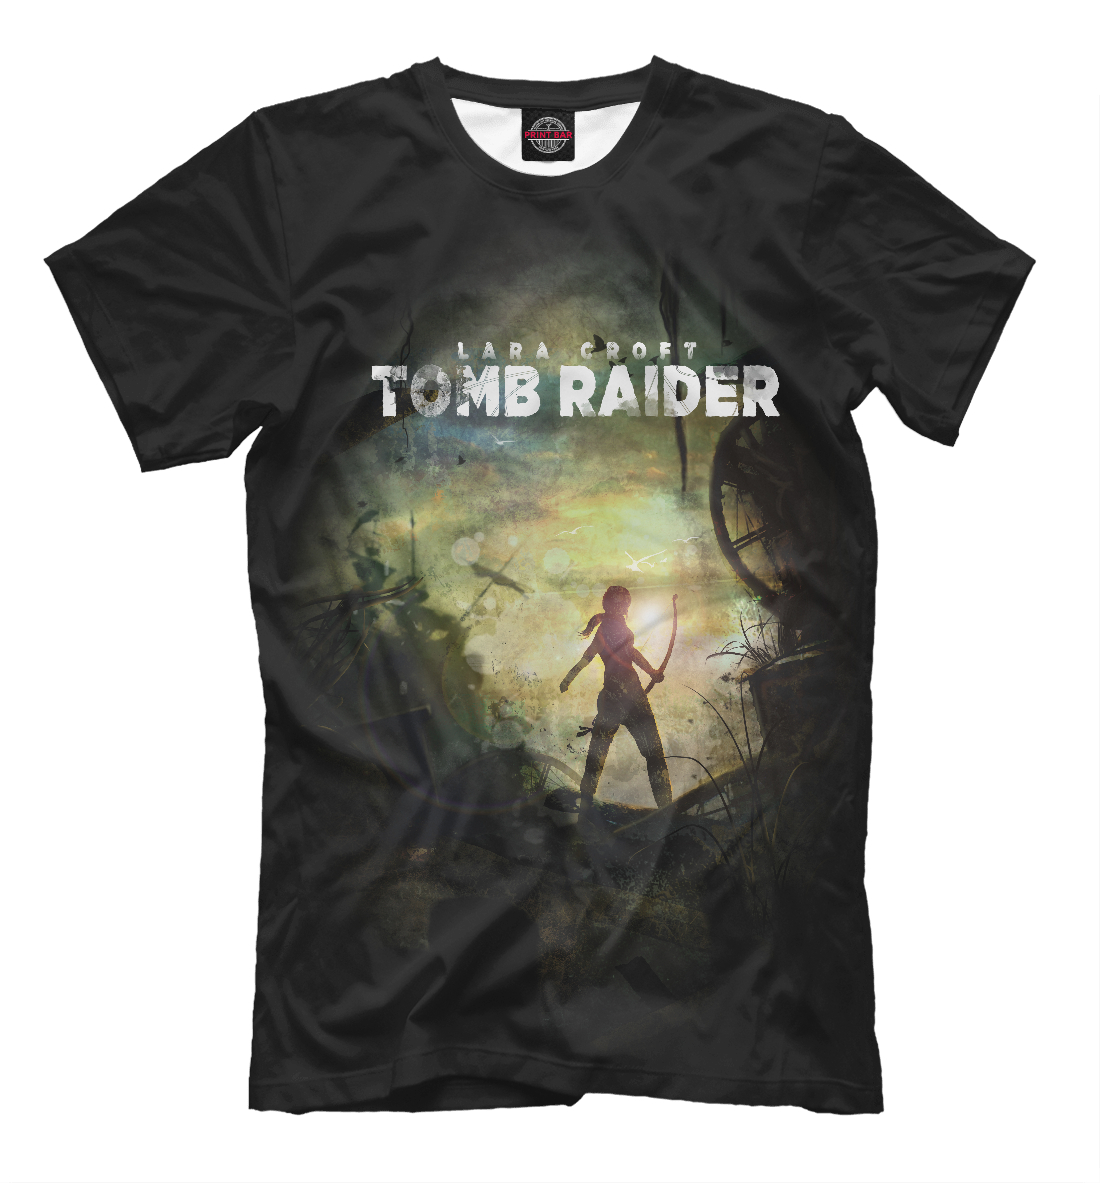 Купить Tomb Raider 2018, Printbar, Футболки, TBR-575561-fut-2